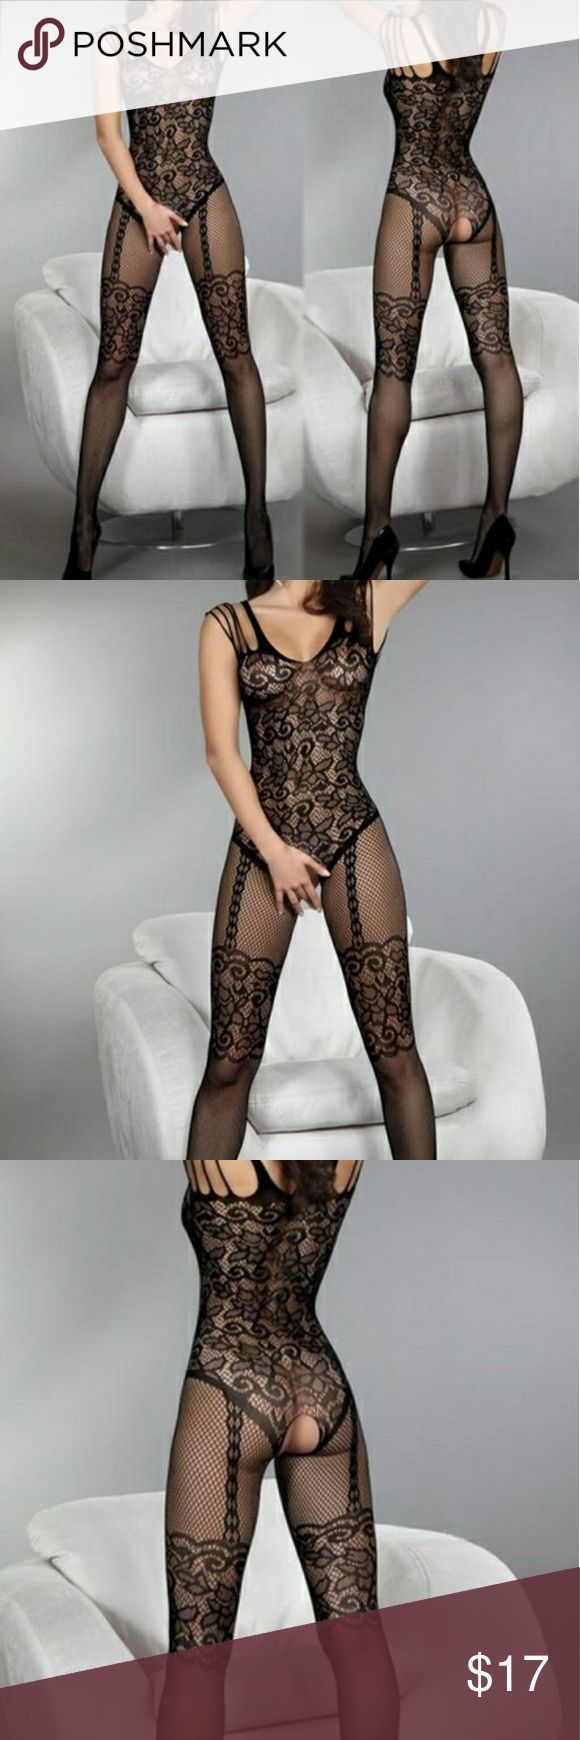 Lady Charming Fishnet Body Stocking Lingerie  Lady Charming Open Crotch Fishnet Body Stocking Lingerie - Color in Black - Material: Nylon - Good elasticity, fits most sizes - New - Thank you  Intimates & Sleepwear